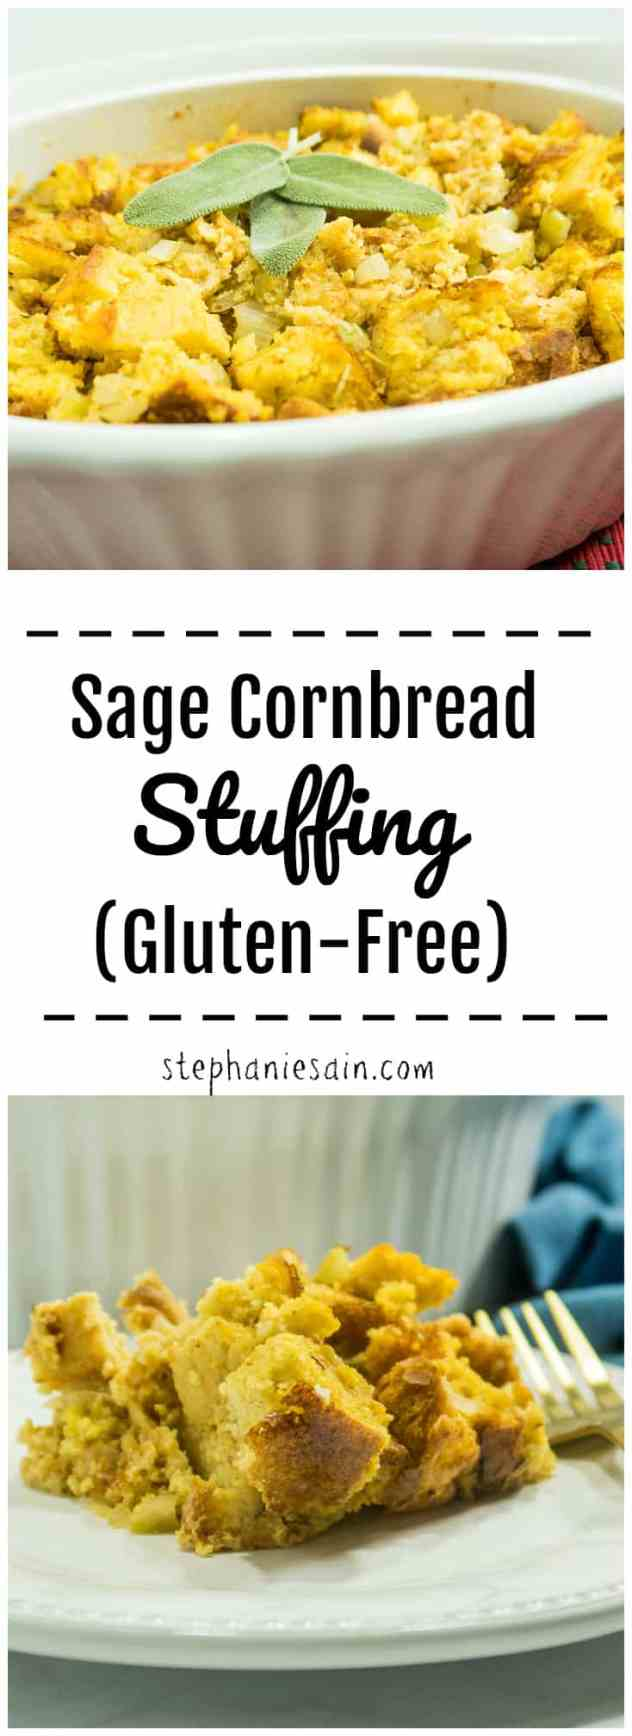 Sage Cornbread Stuffing (Gluten-Free) | Apples for CJ